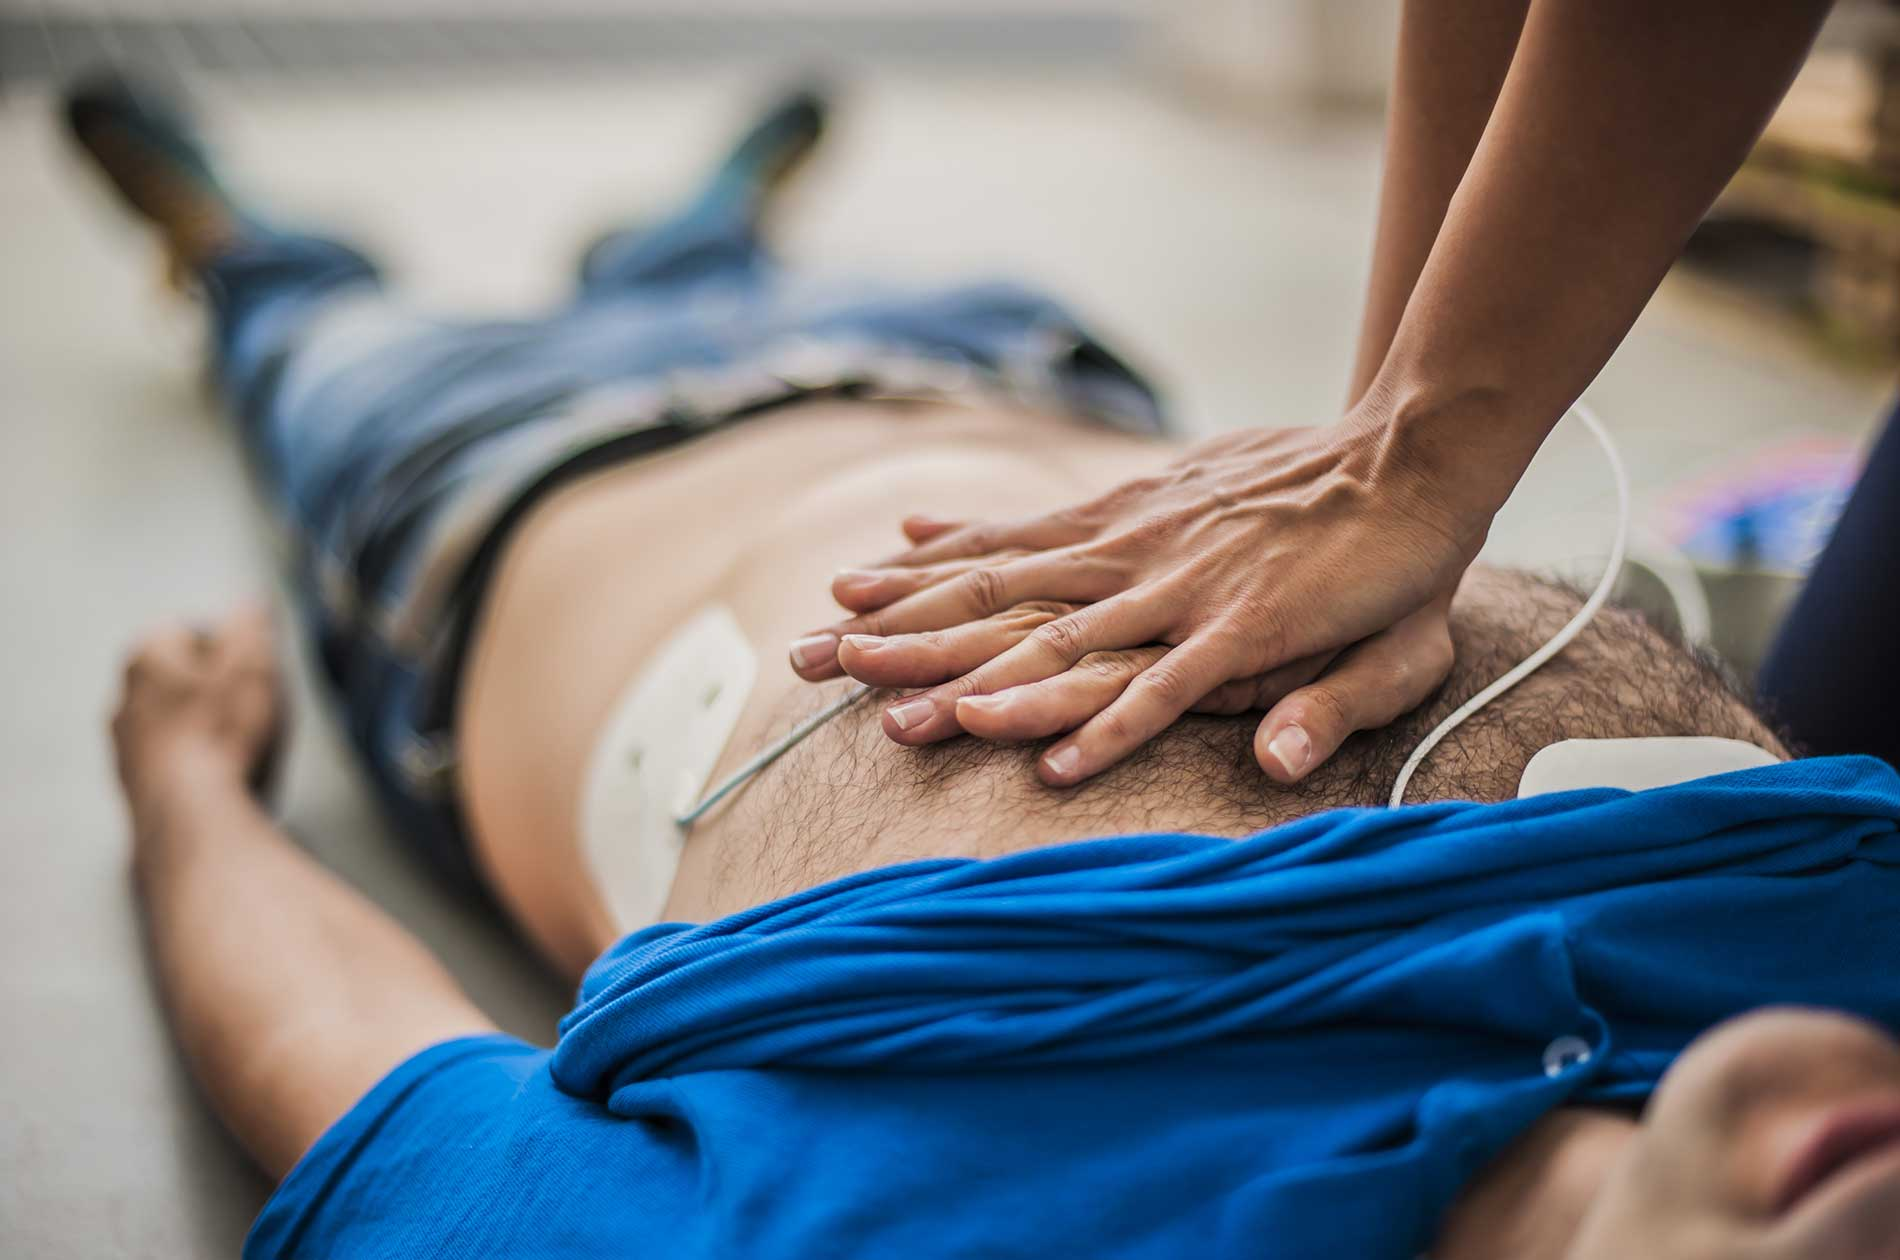 A nurse performing chest compressions on a patient